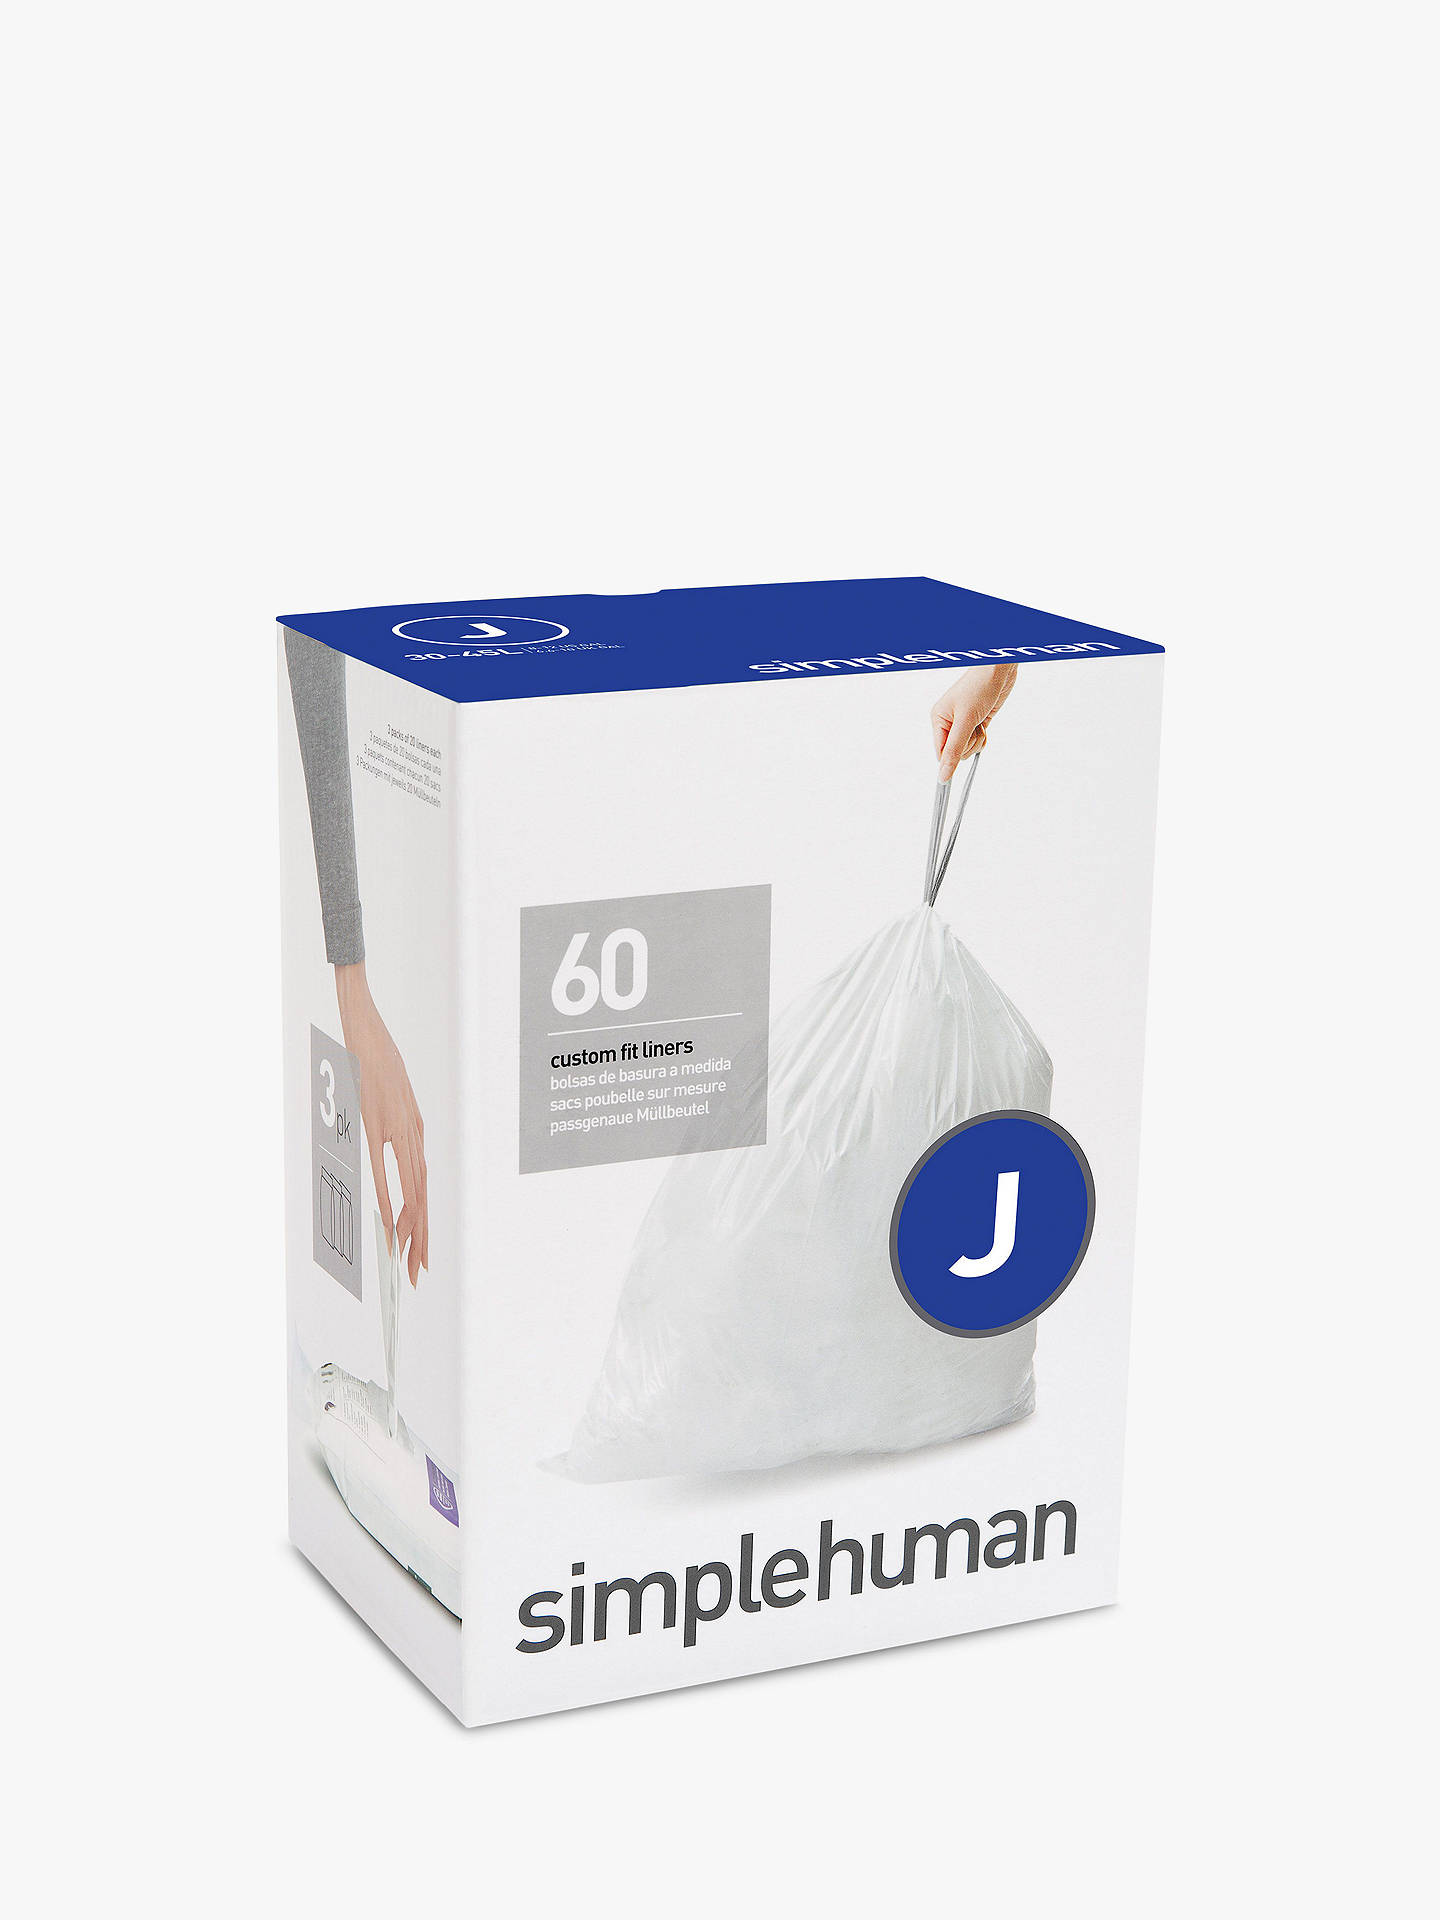 Buy simplehuman Bin Liners, Size J, Three Packs of 20 Online at johnlewis.com